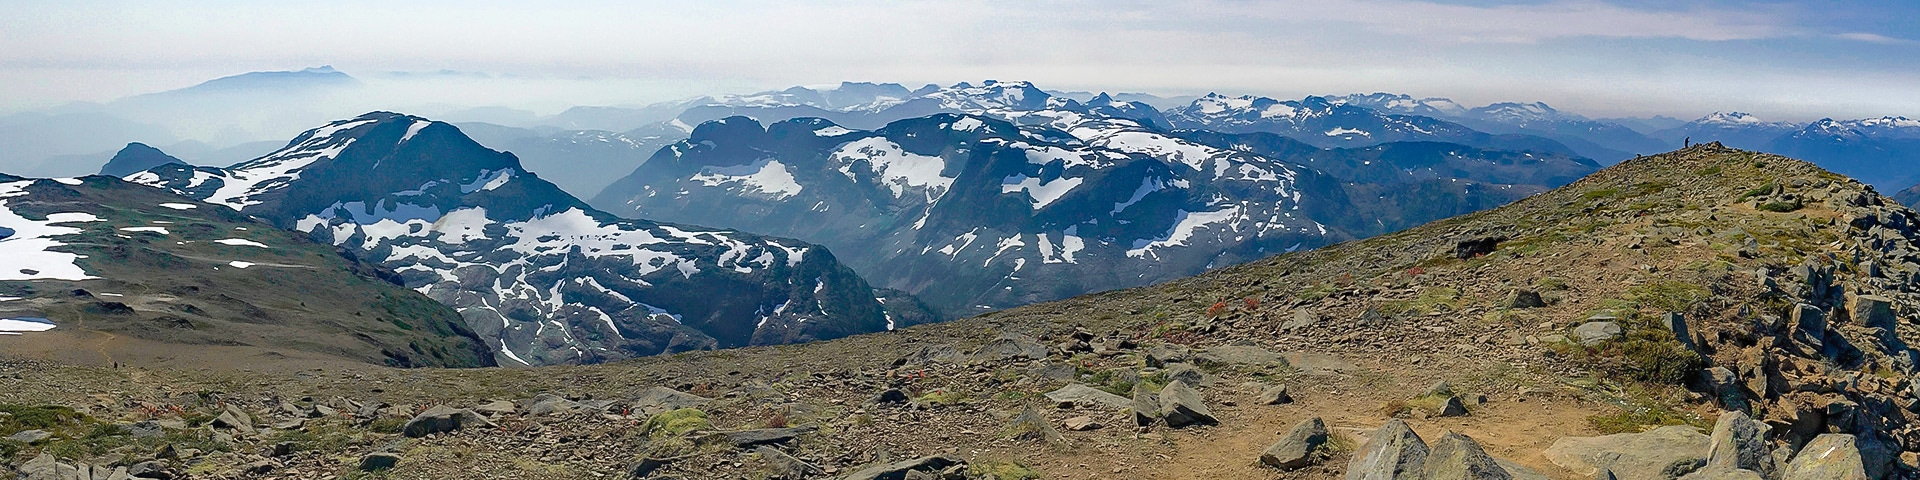 Panorama of the Mt Albert Edward hike in Strathcona Provincial Park, Vancouver Island